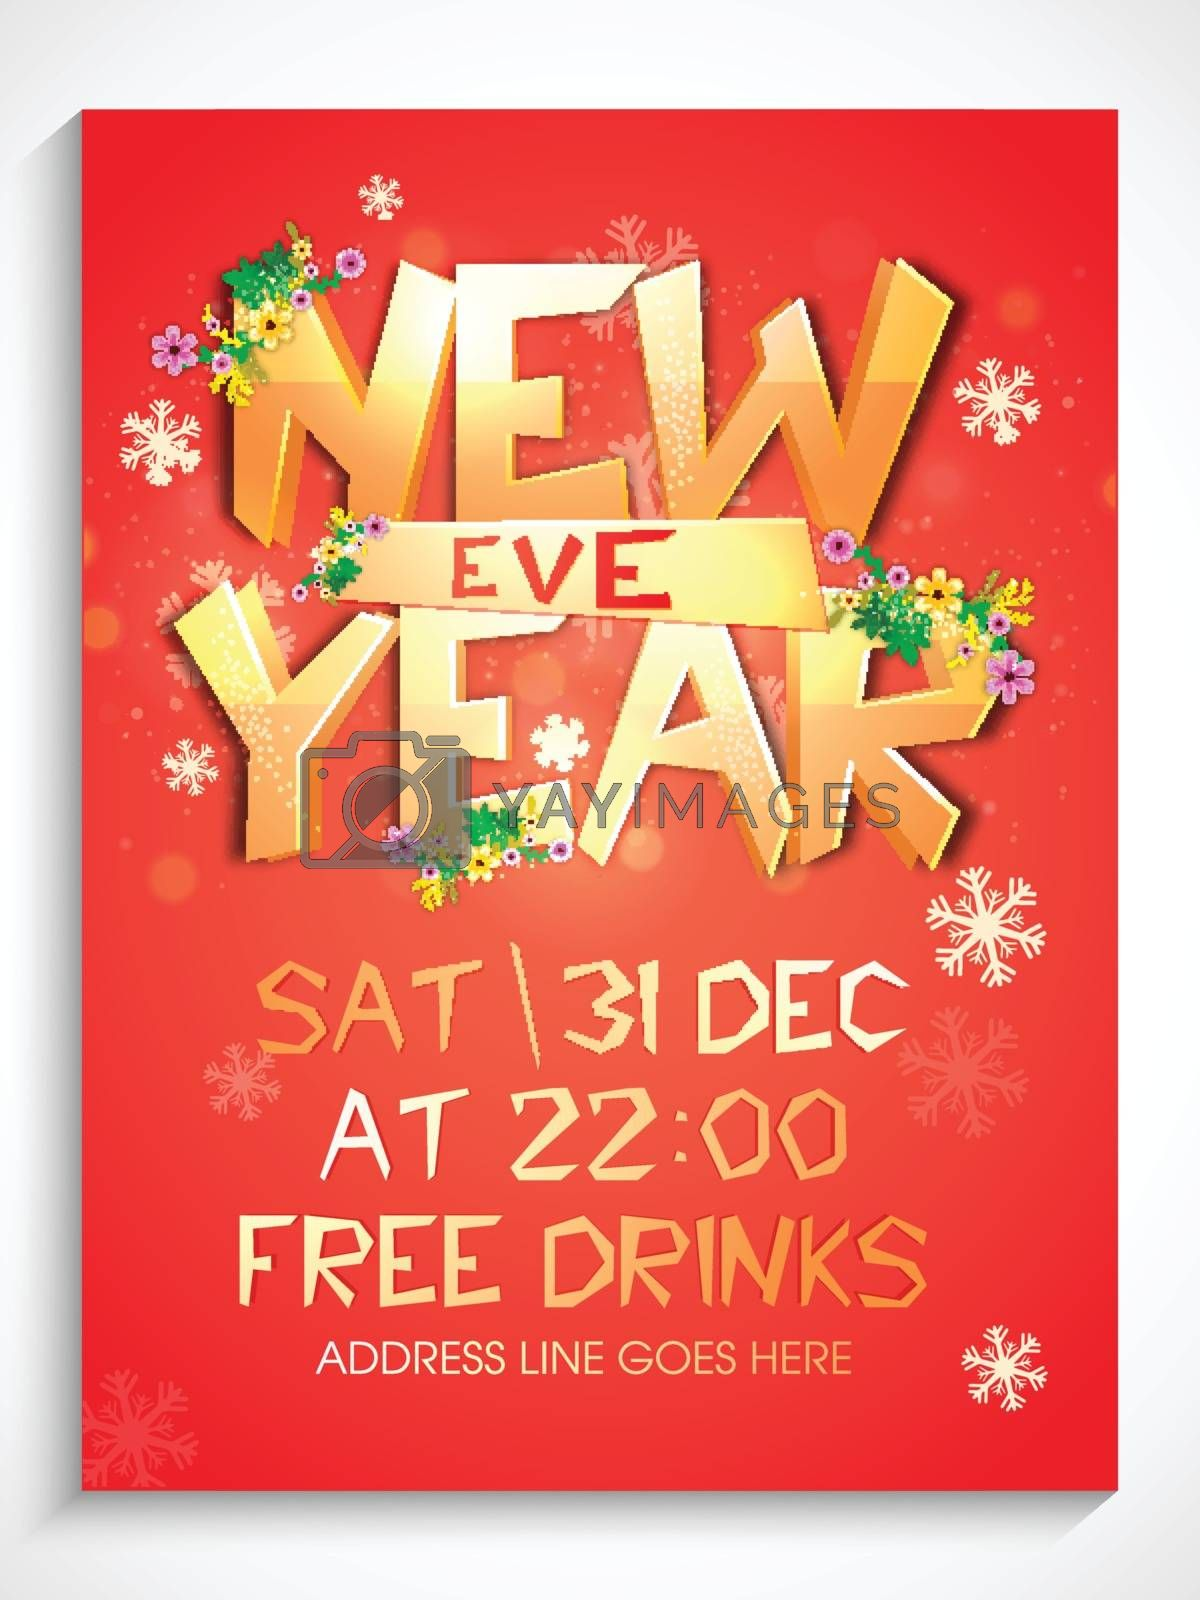 Golden Text New Year Eve on snowflakes decorated background. Can be used as template, banner, flyer or invitation card design.